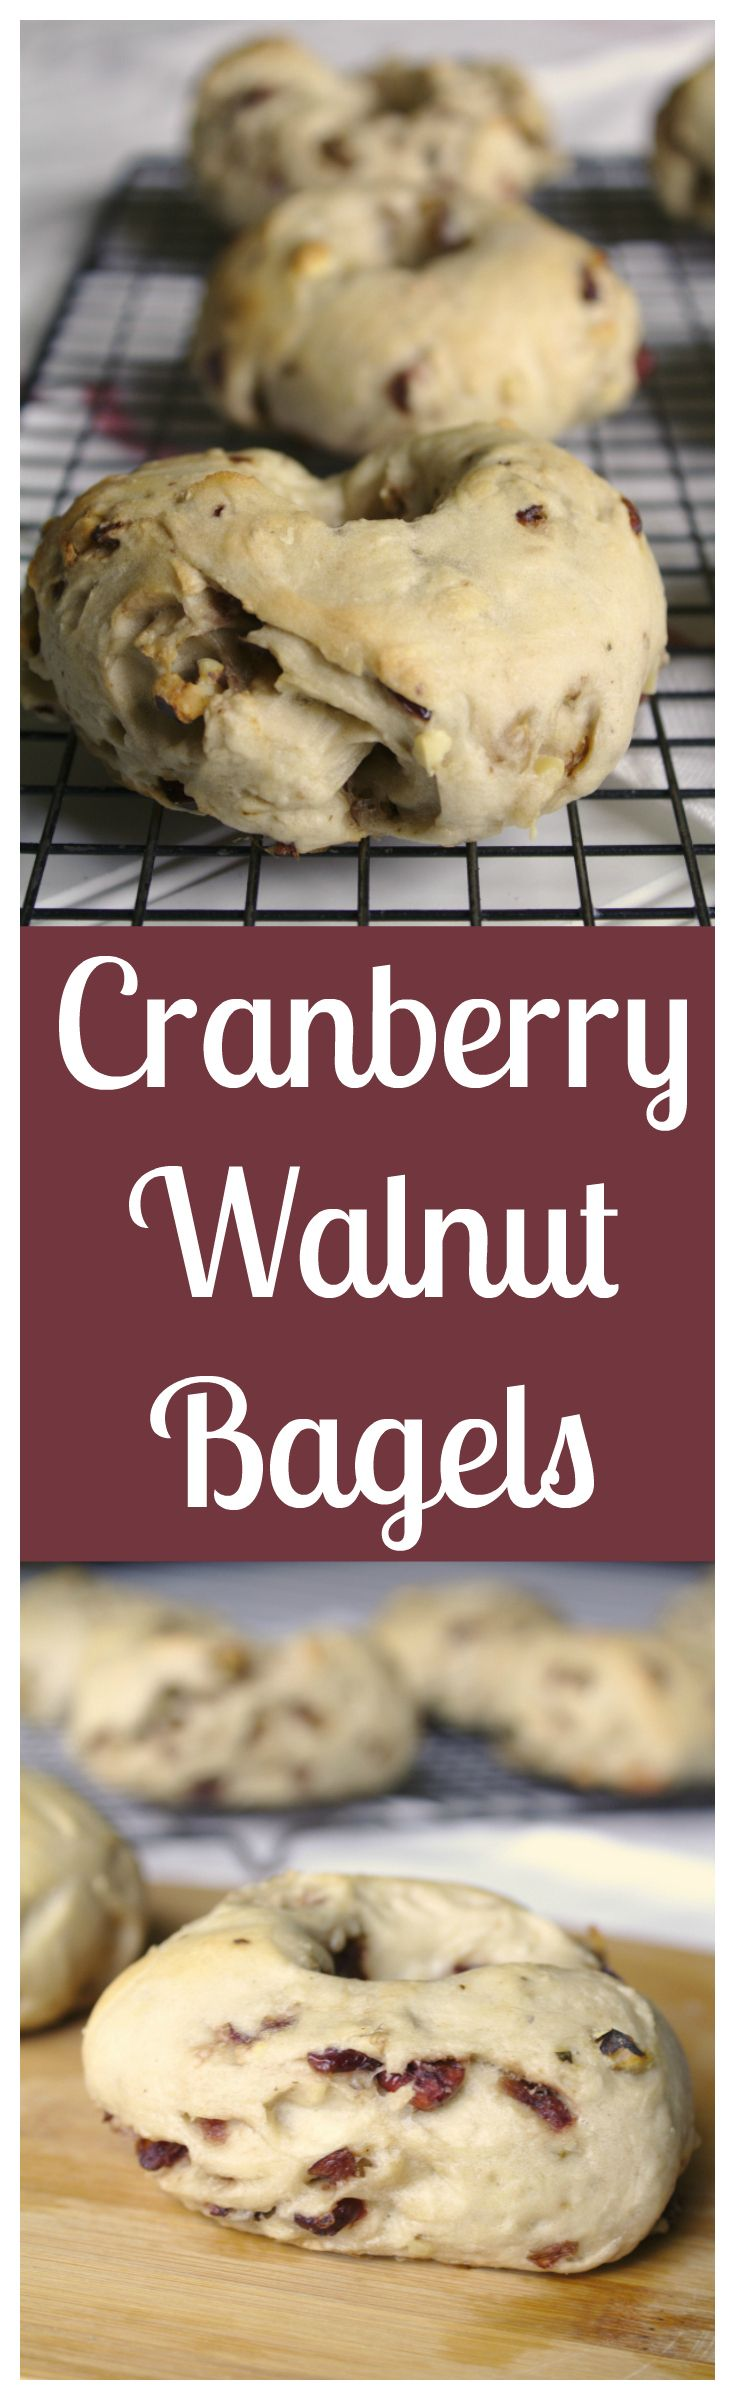 Cranberry Walnut Bagels - Wonderful homemade bagels filled with cranberries and chopped walnuts. Grab some cream cheese and dig in! #sponsored #OurCaringHands #SoftsoapTouch @target